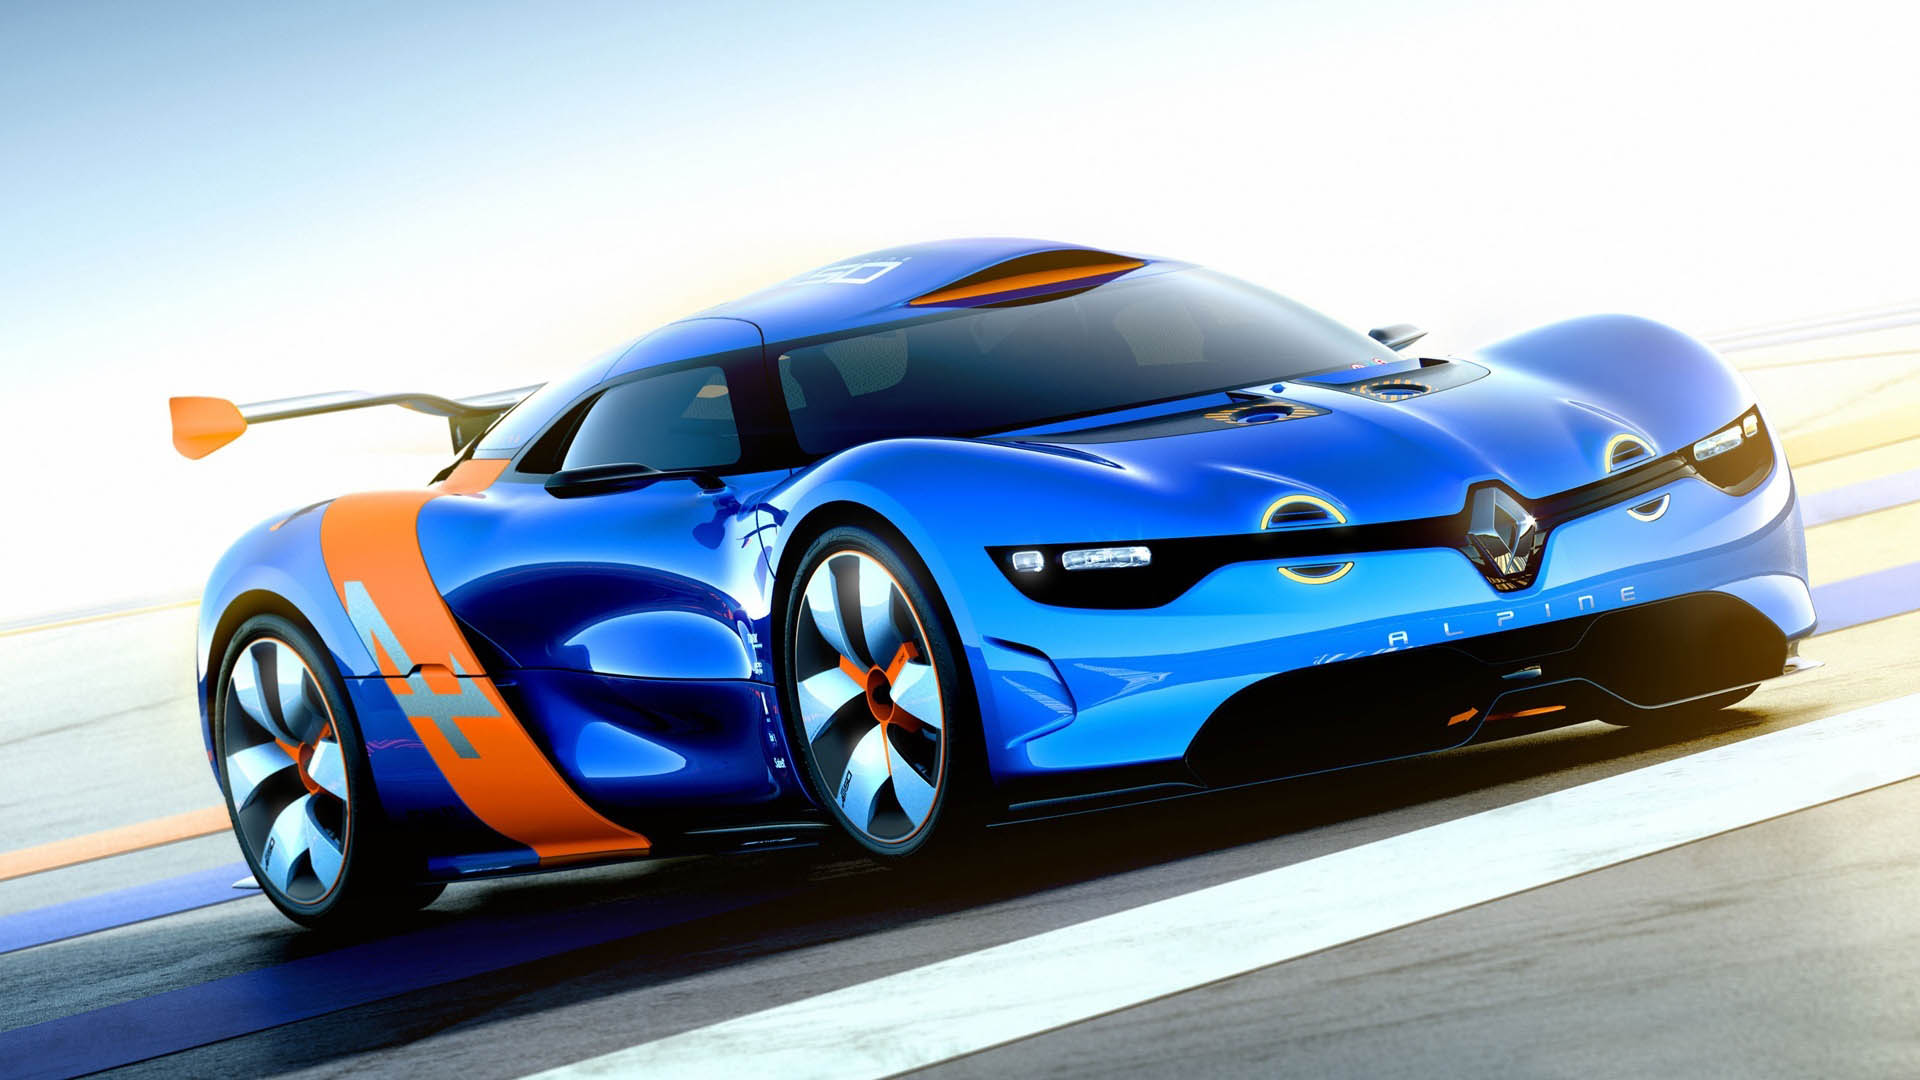 Renault Alpine Concept Car-Wallpaper 1080p Free HD ...